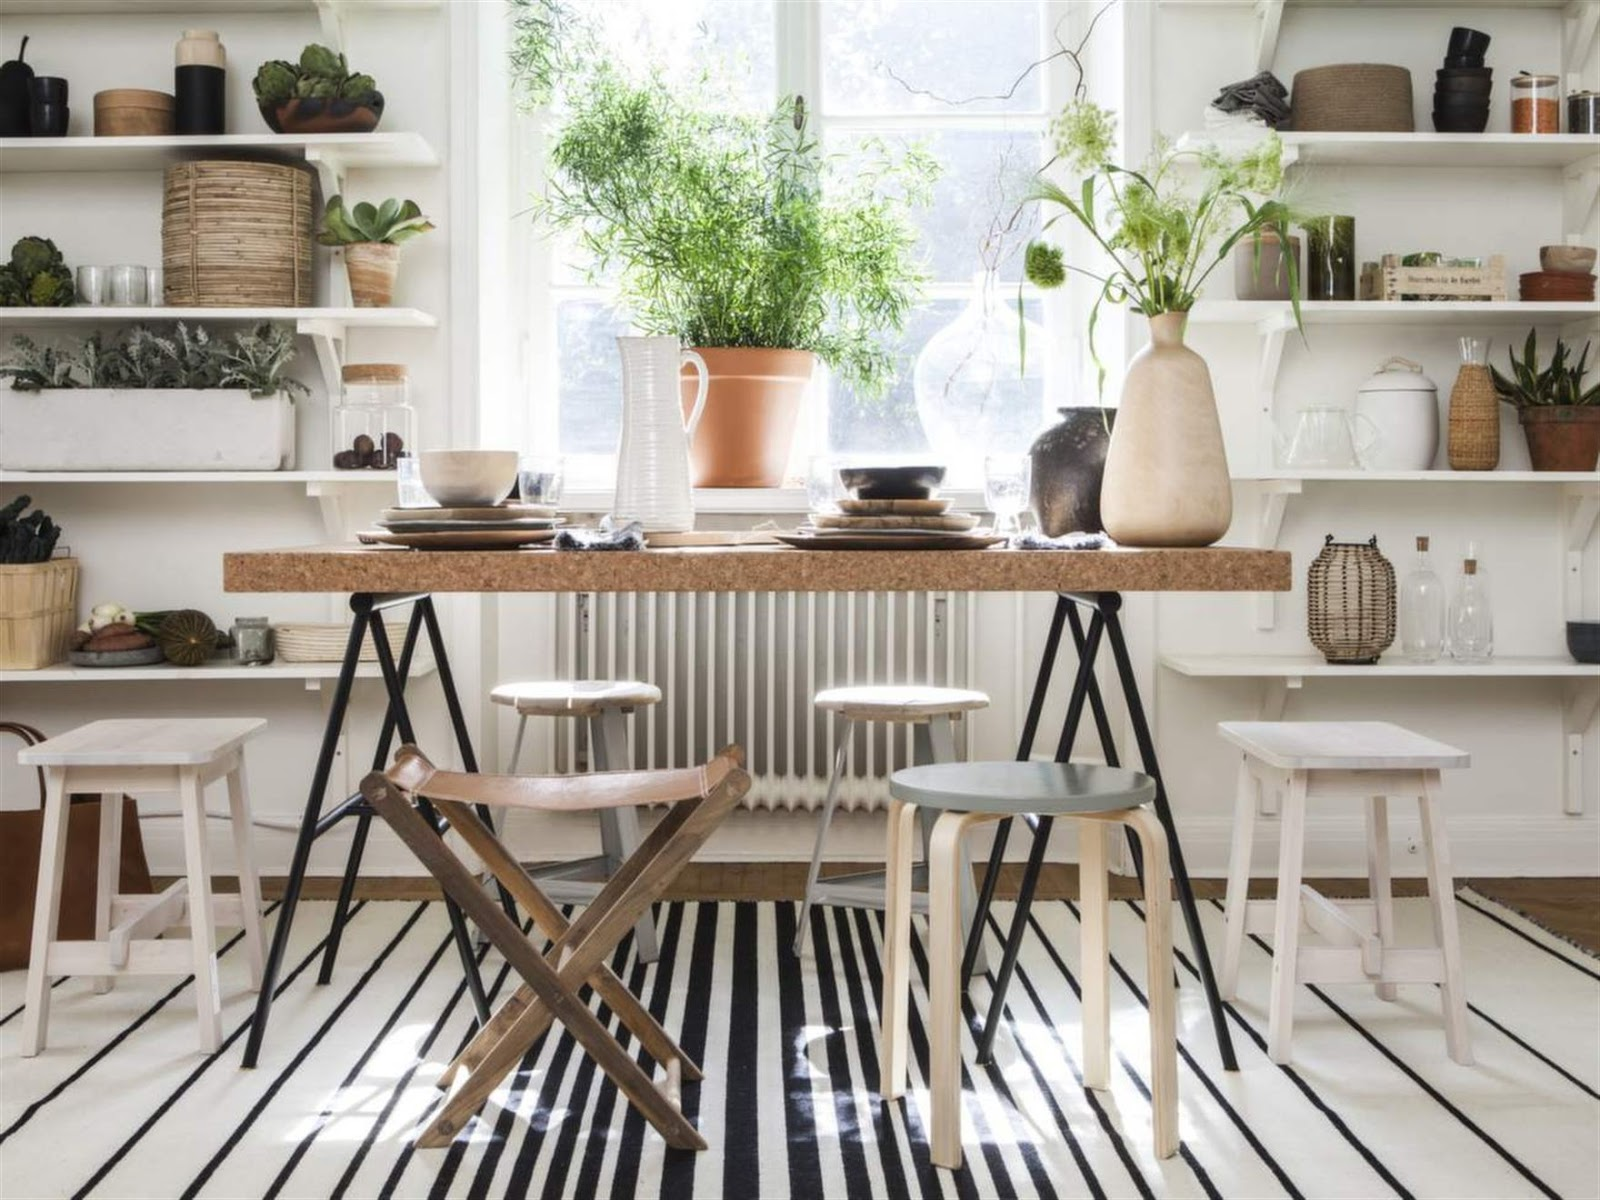 Decorating with natural materials